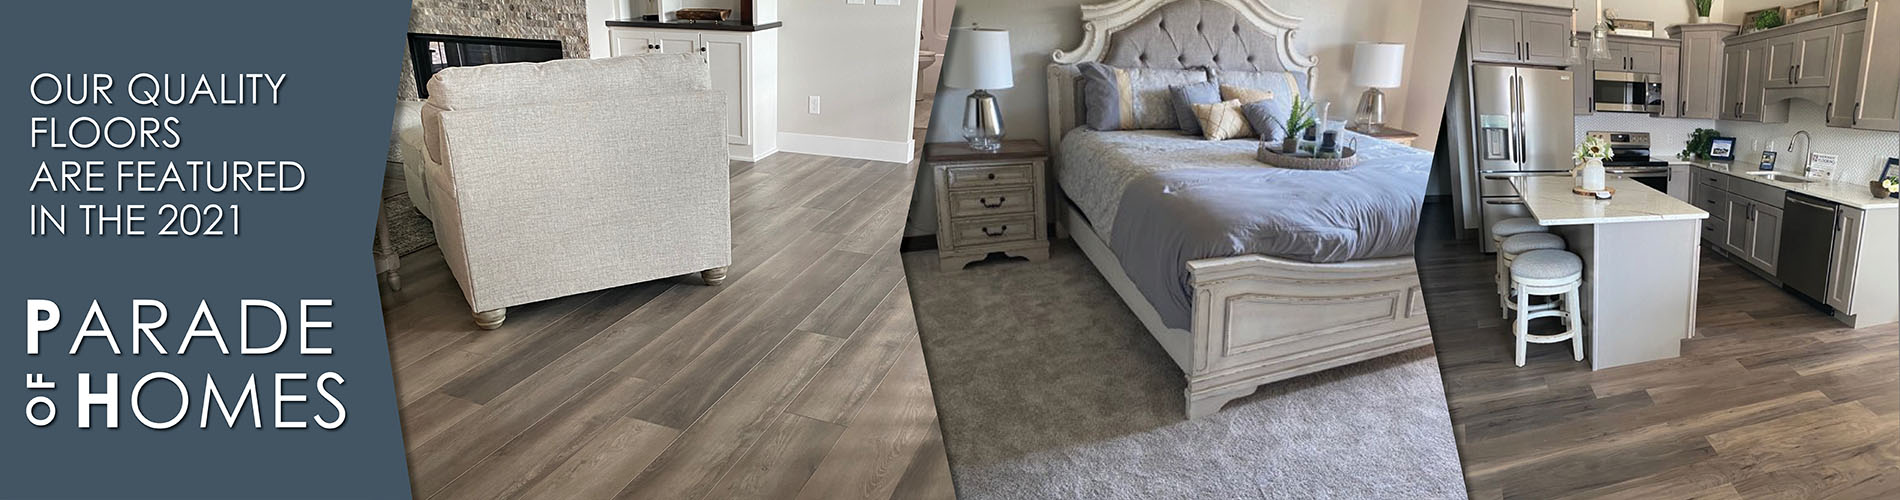 Our quality floors are featured in the 2021 Parade of Homes